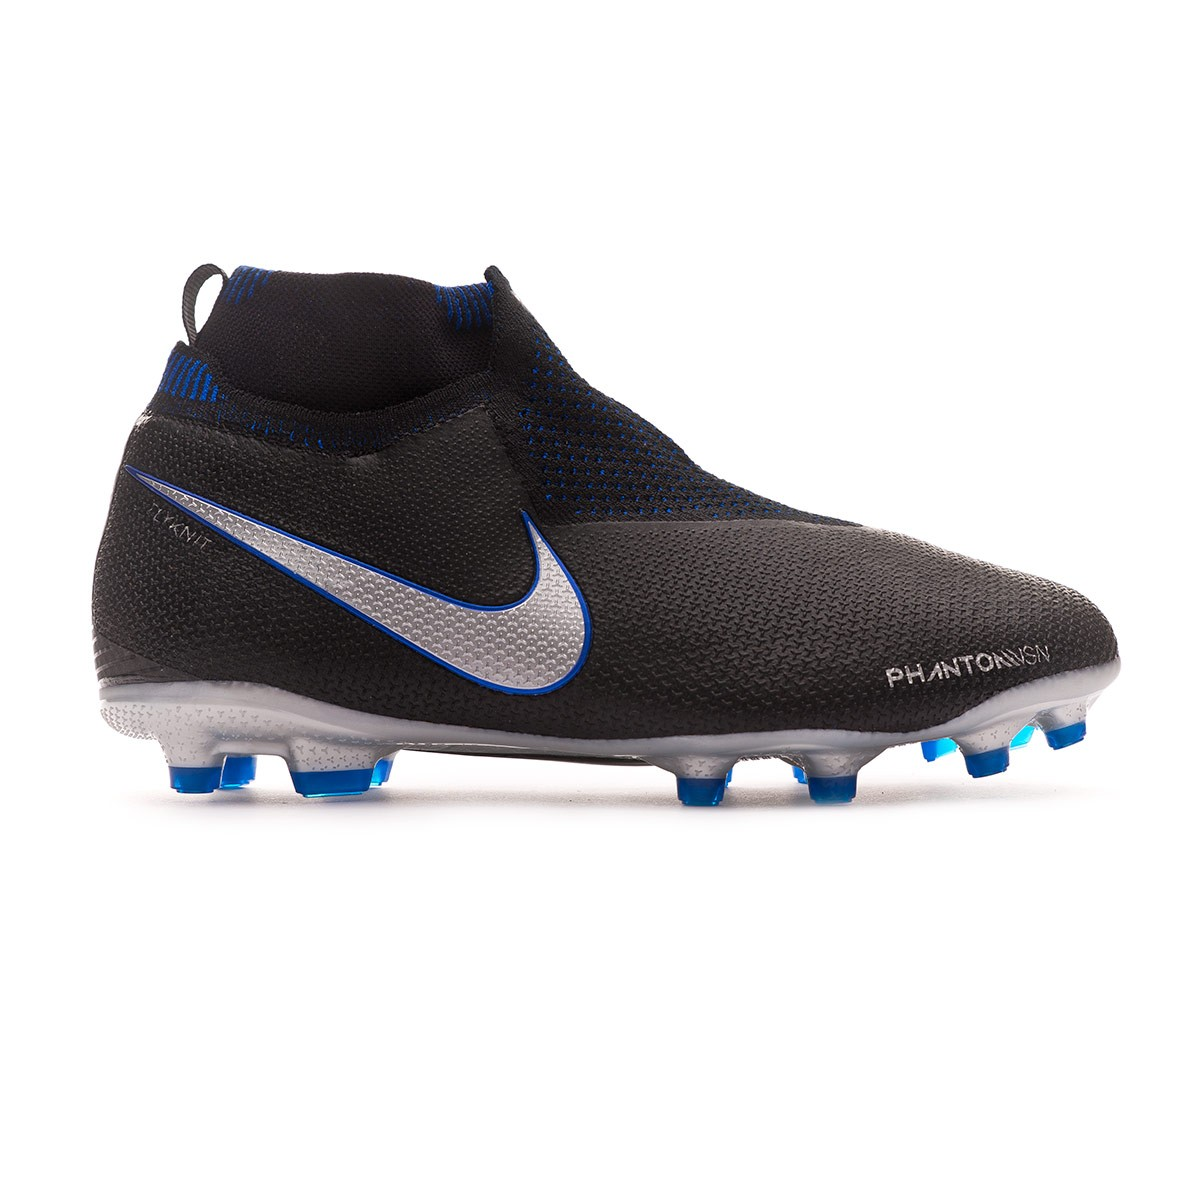 51e887ffa81 Football Boots Nike Kids Phantom Vision Elite DF FG MG Black-Metallic  silver-Racer blue - Football store Fútbol Emotion